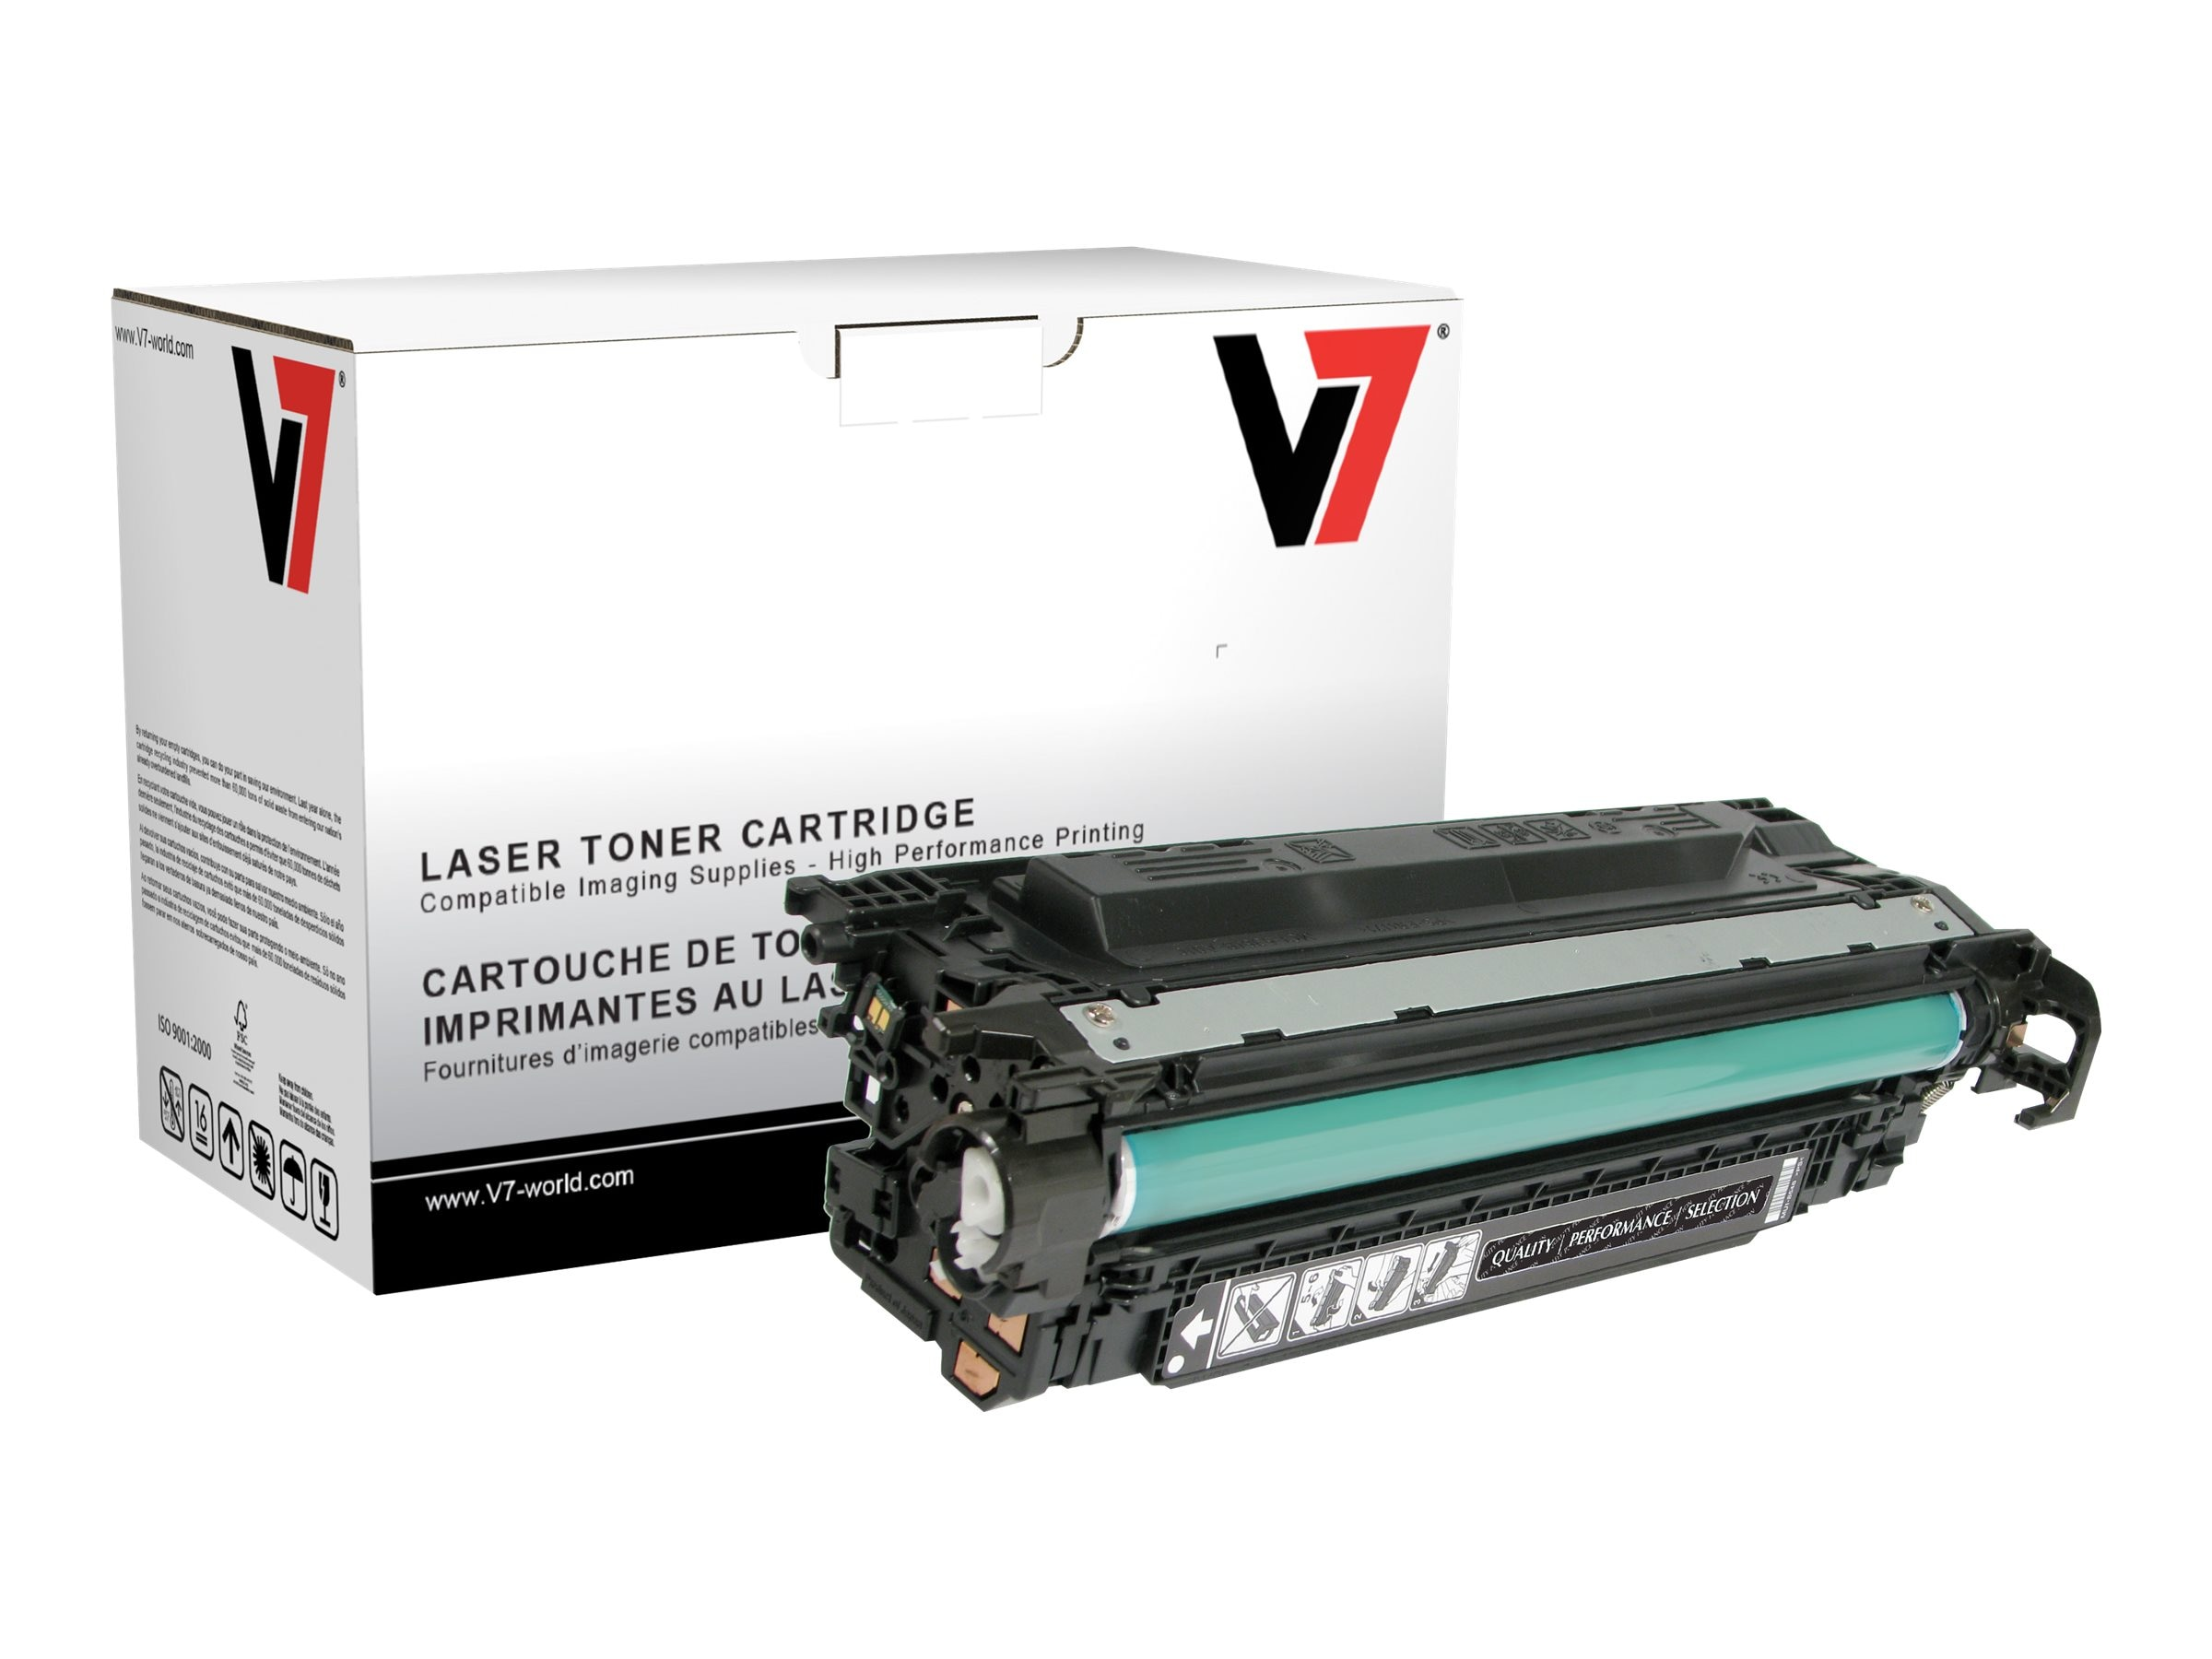 V7 CE250A Black Toner Cartridge for HP LaserJet CP3525 (TAA Compliant), THK23525